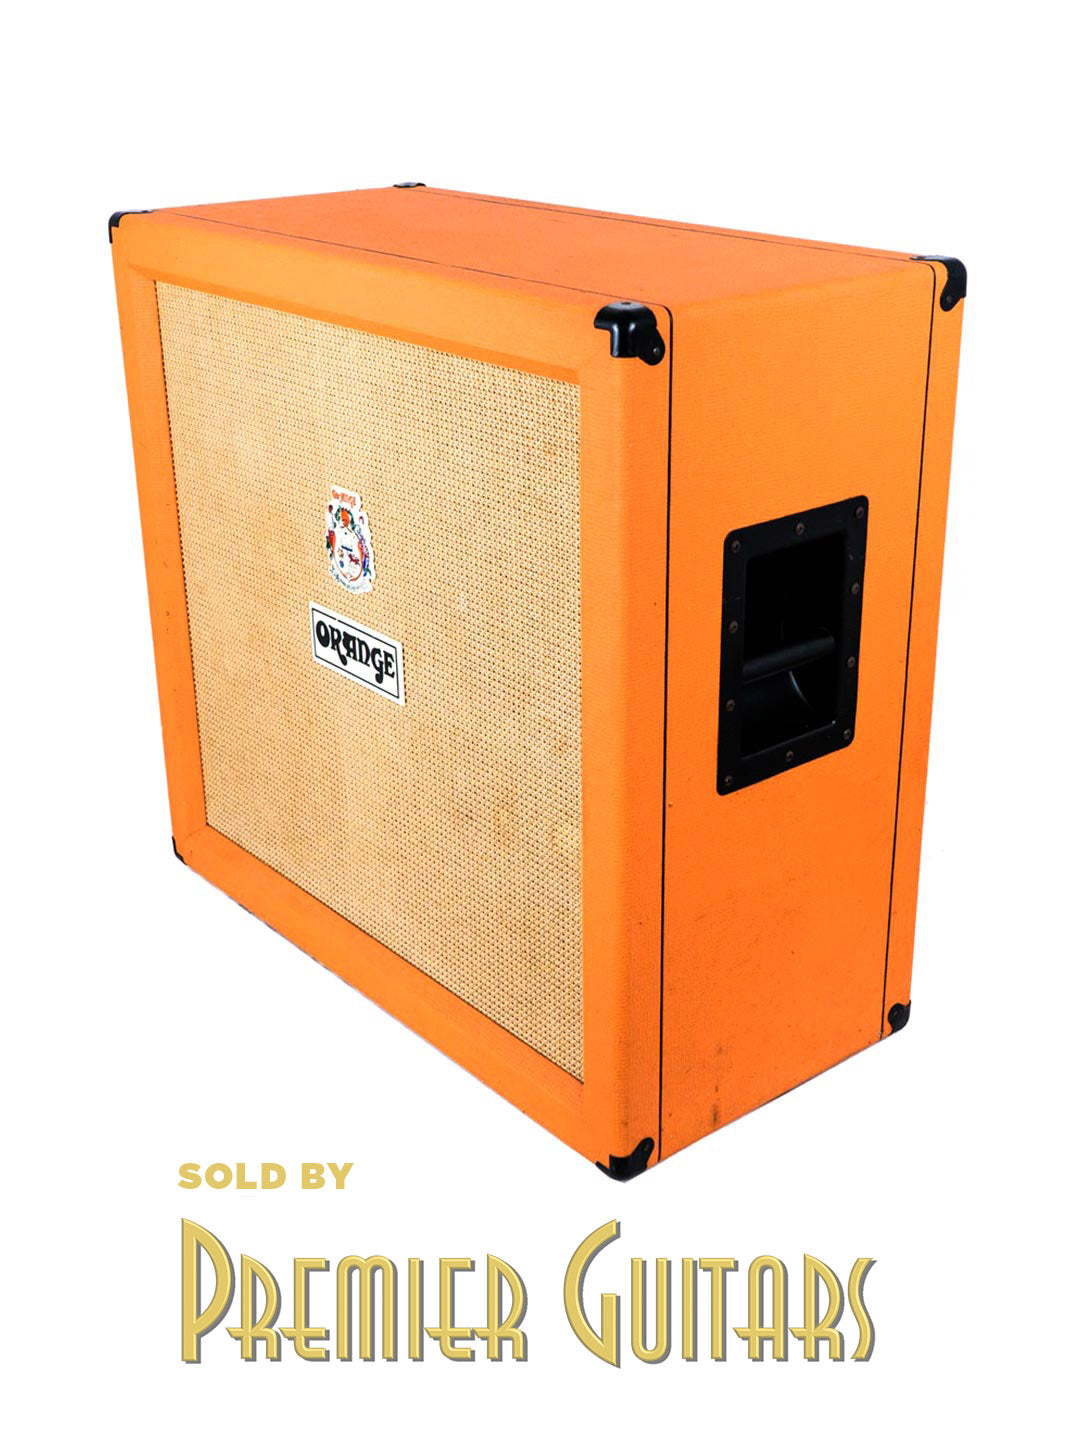 SOLD Orange PPC 412 Quad Box Celestion Vintage 30s – UK 2008 by Orange - $895.00